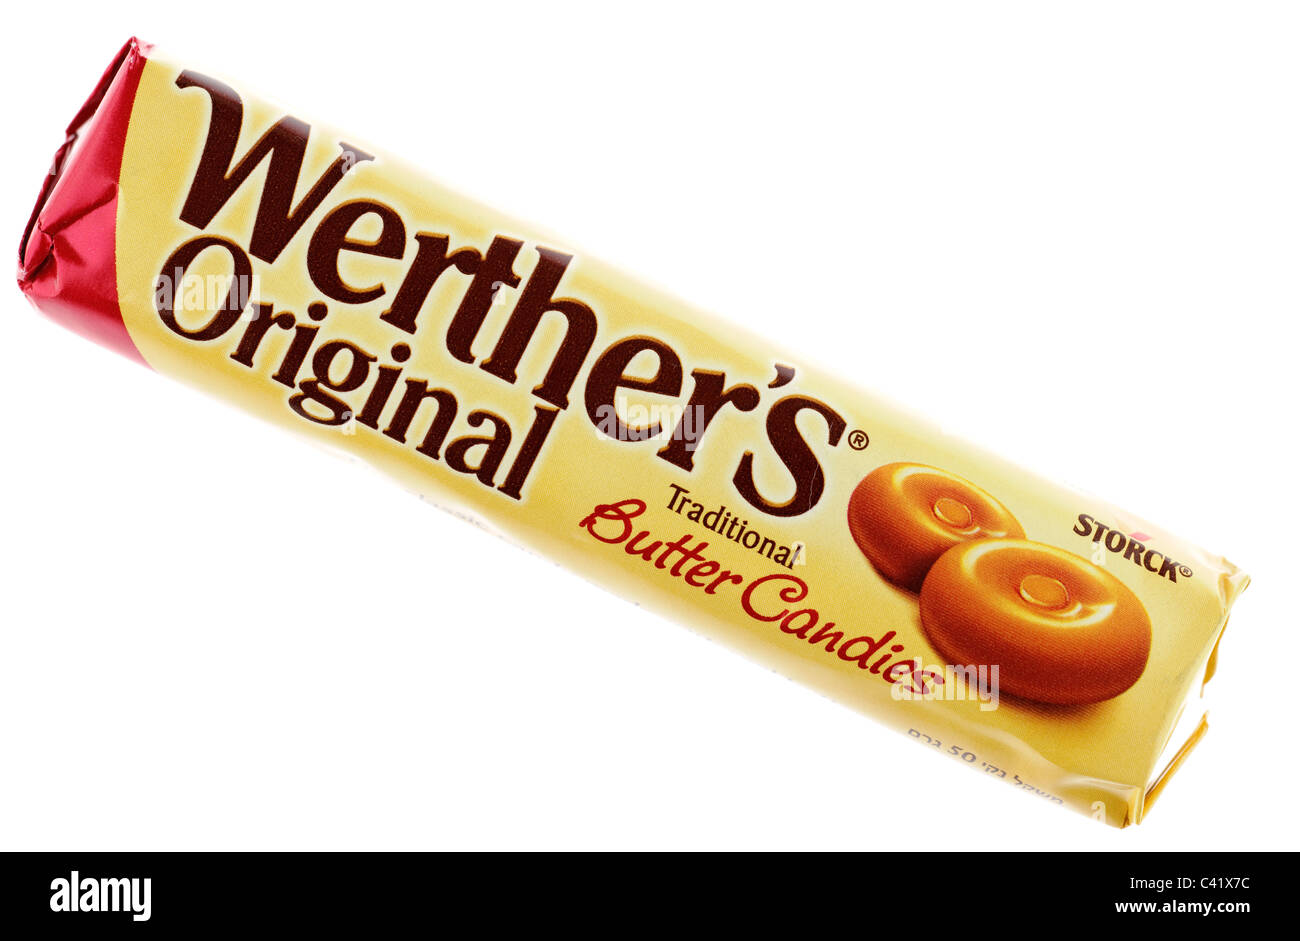 packet of werthers original butter candies sweets stock photo